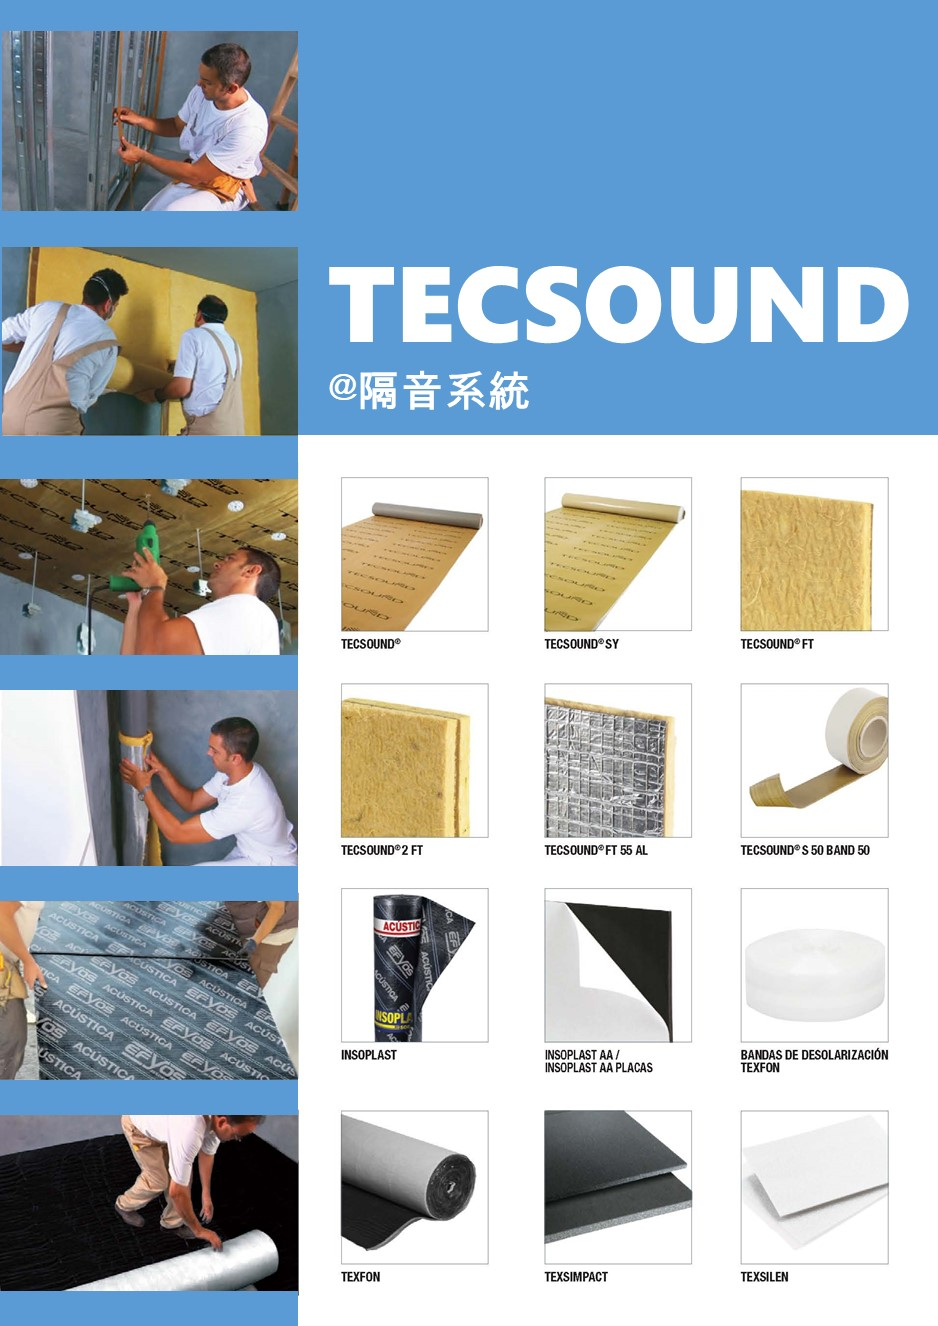 Tecsound